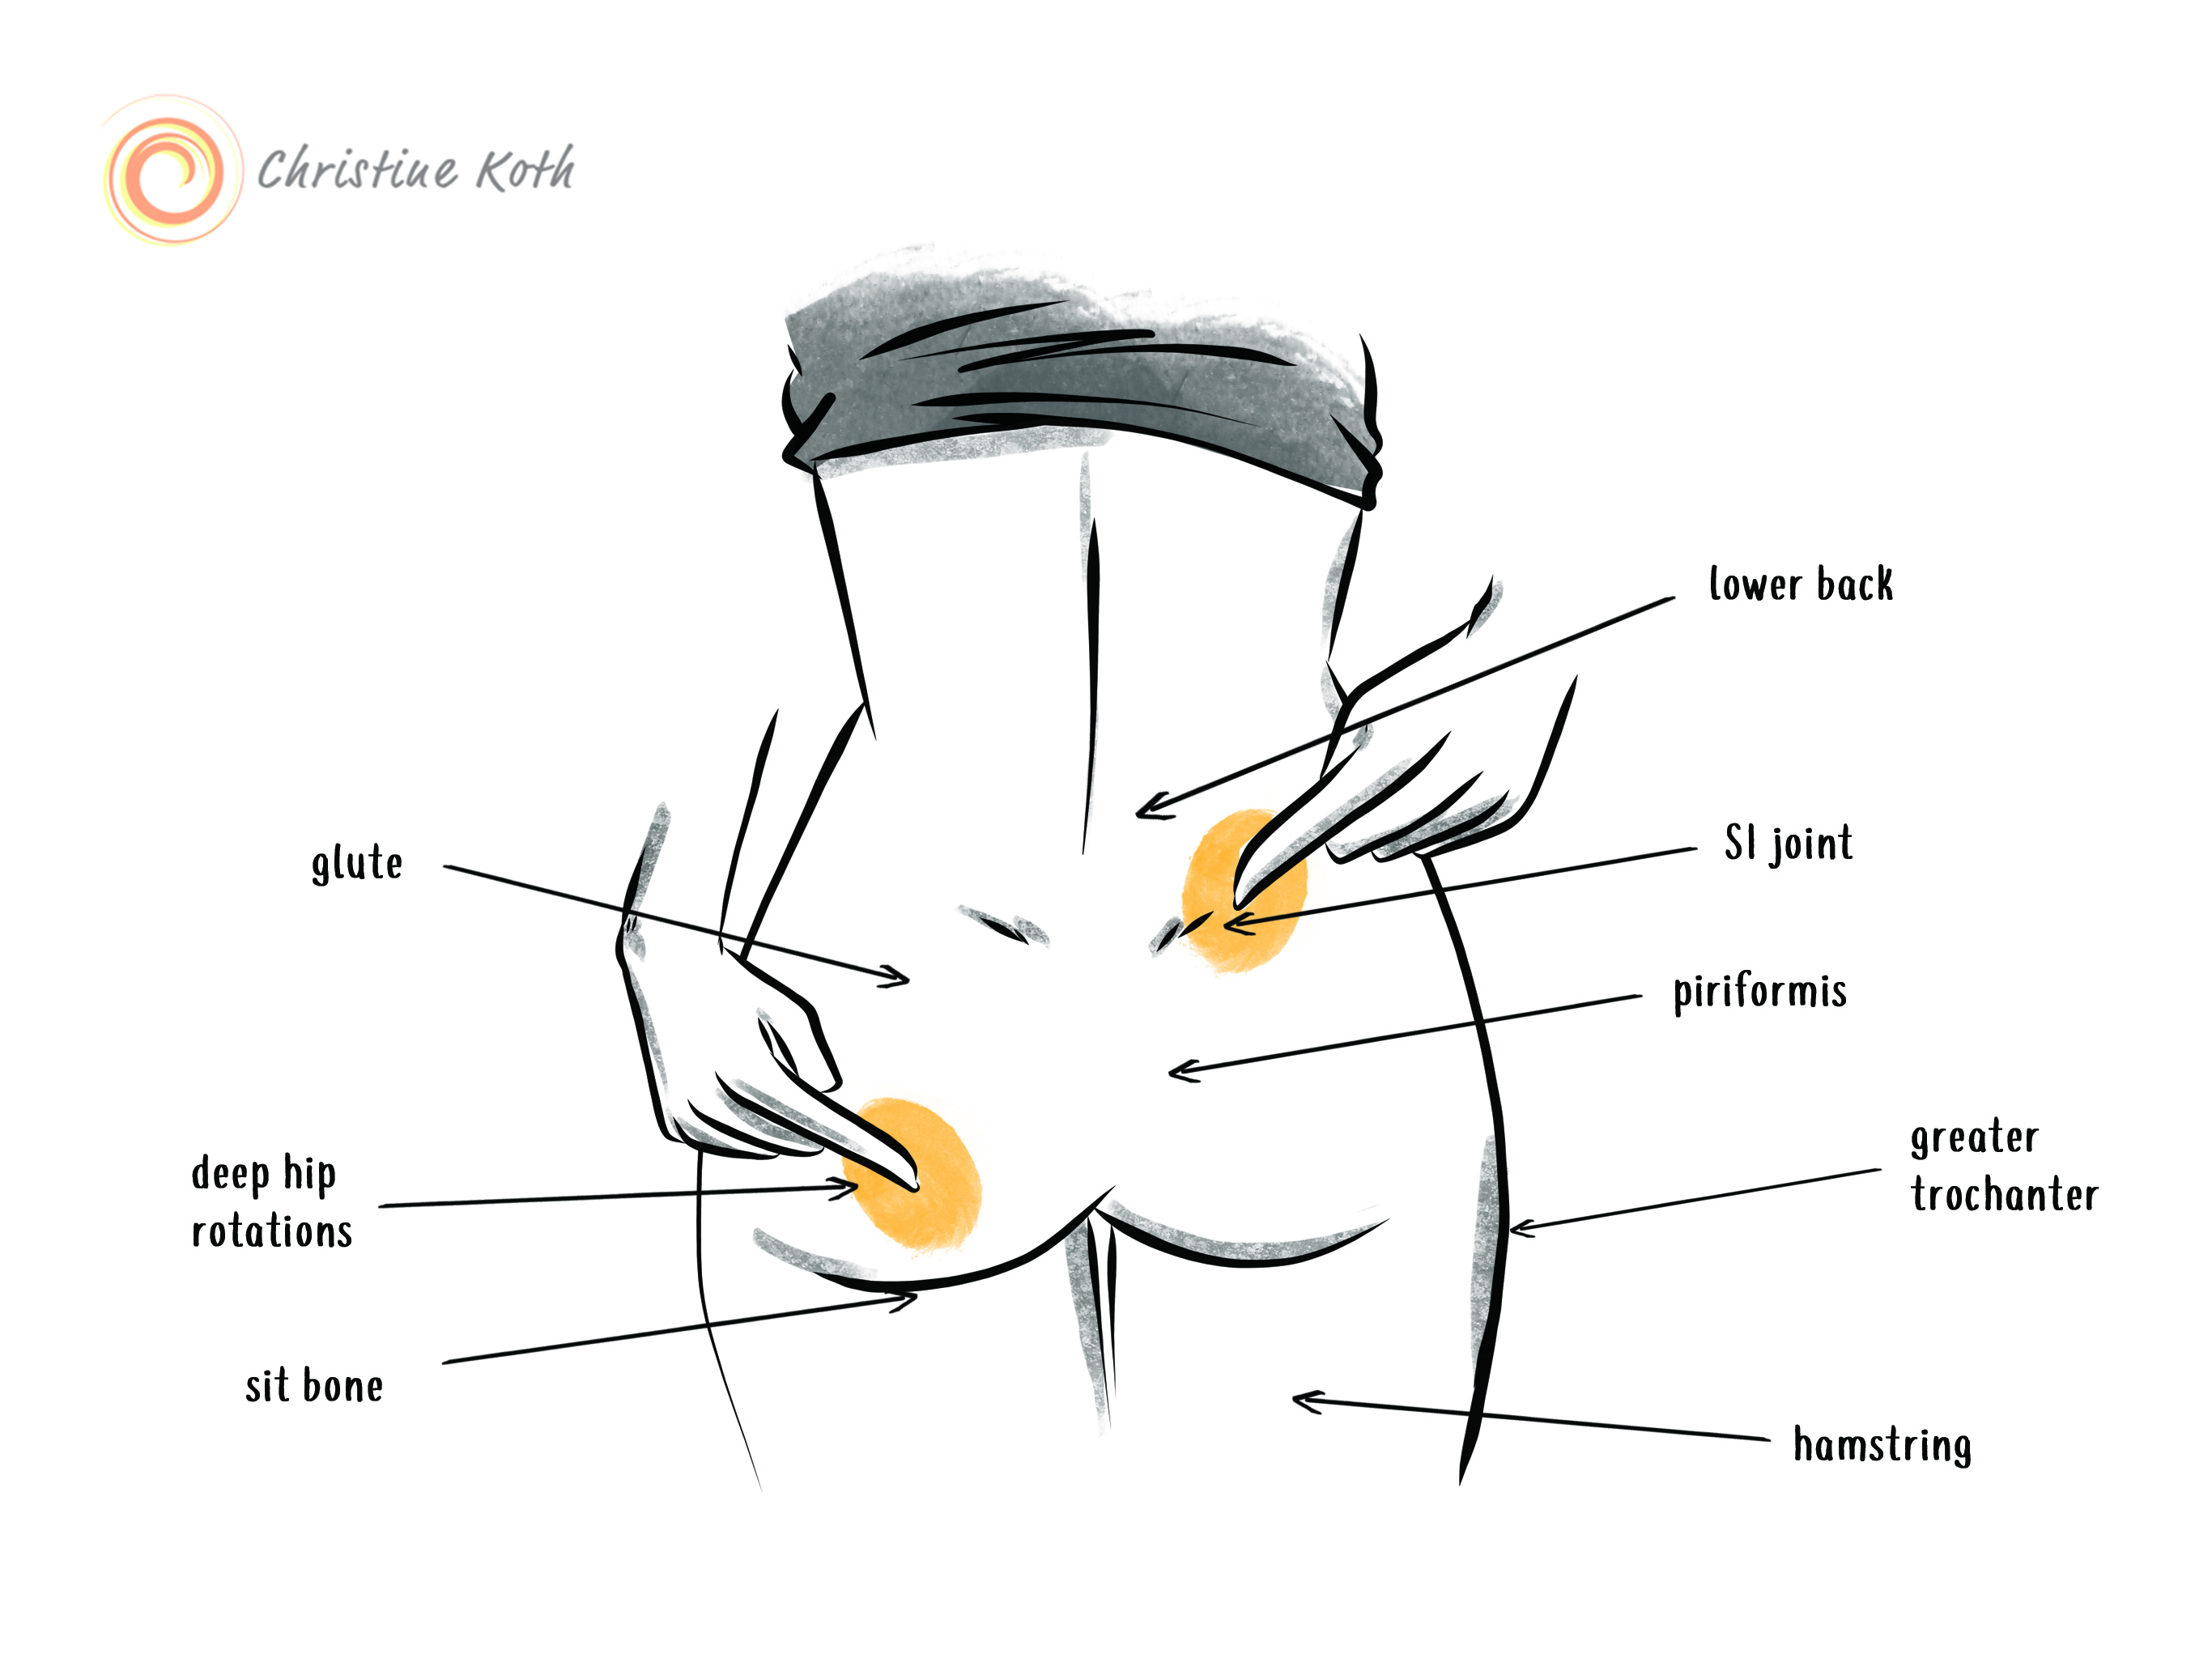 Find some of these opposing muscles on yourself